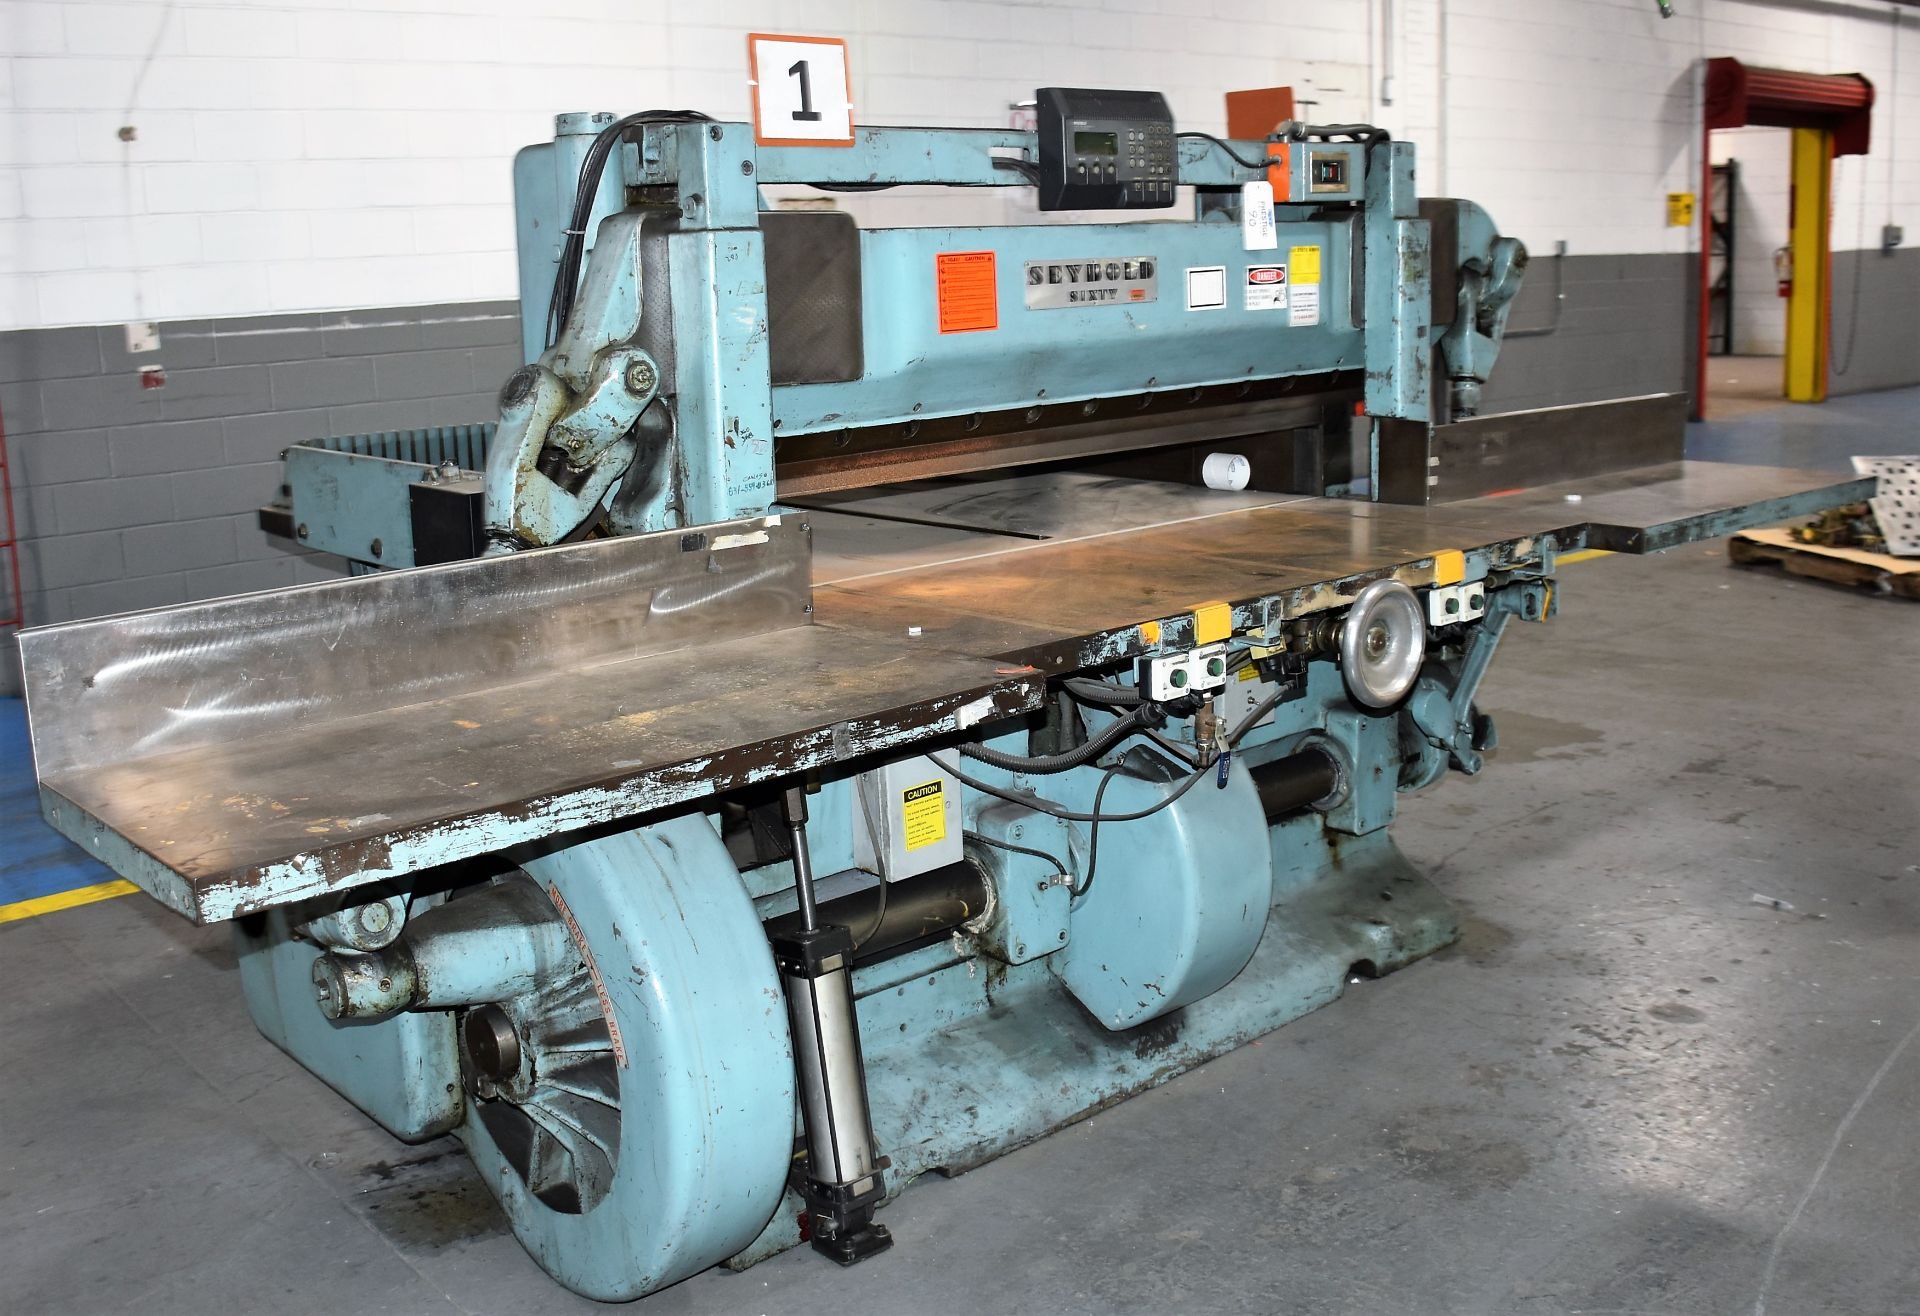 Seybold Paper Cutter, S-64 - Image 2 of 8